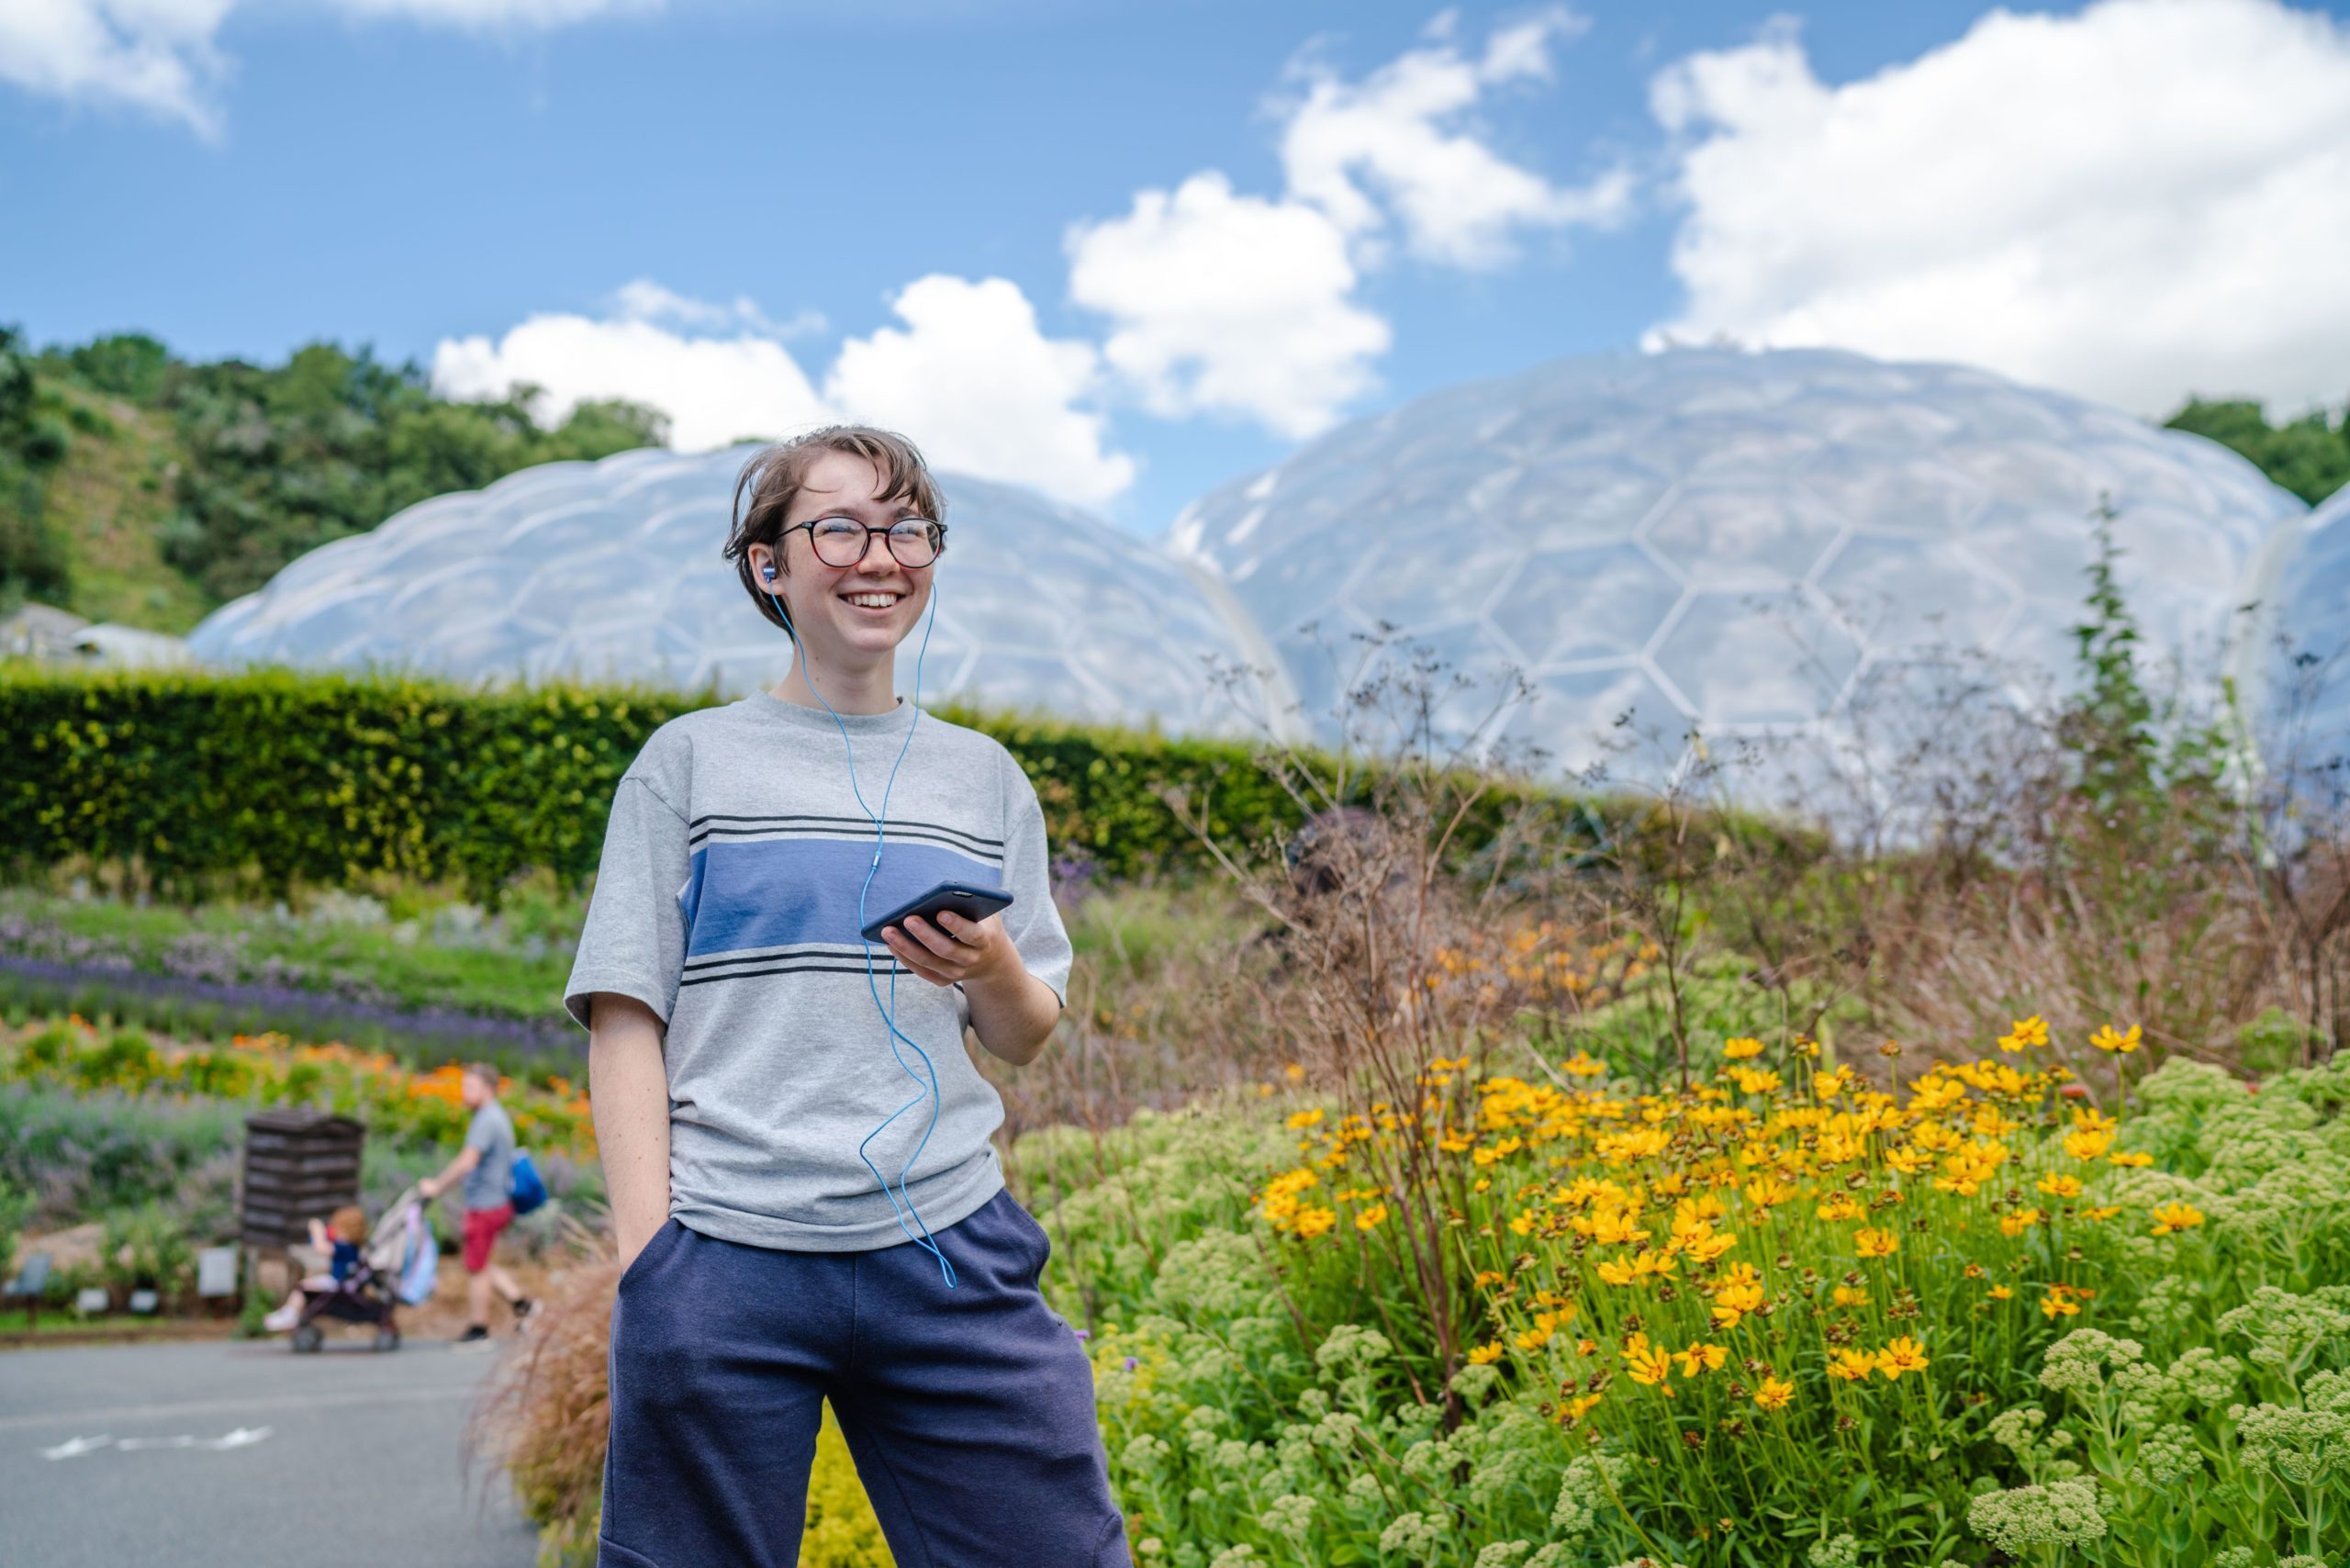 Boy listening to phone through headphones in front of the Eden Project domes